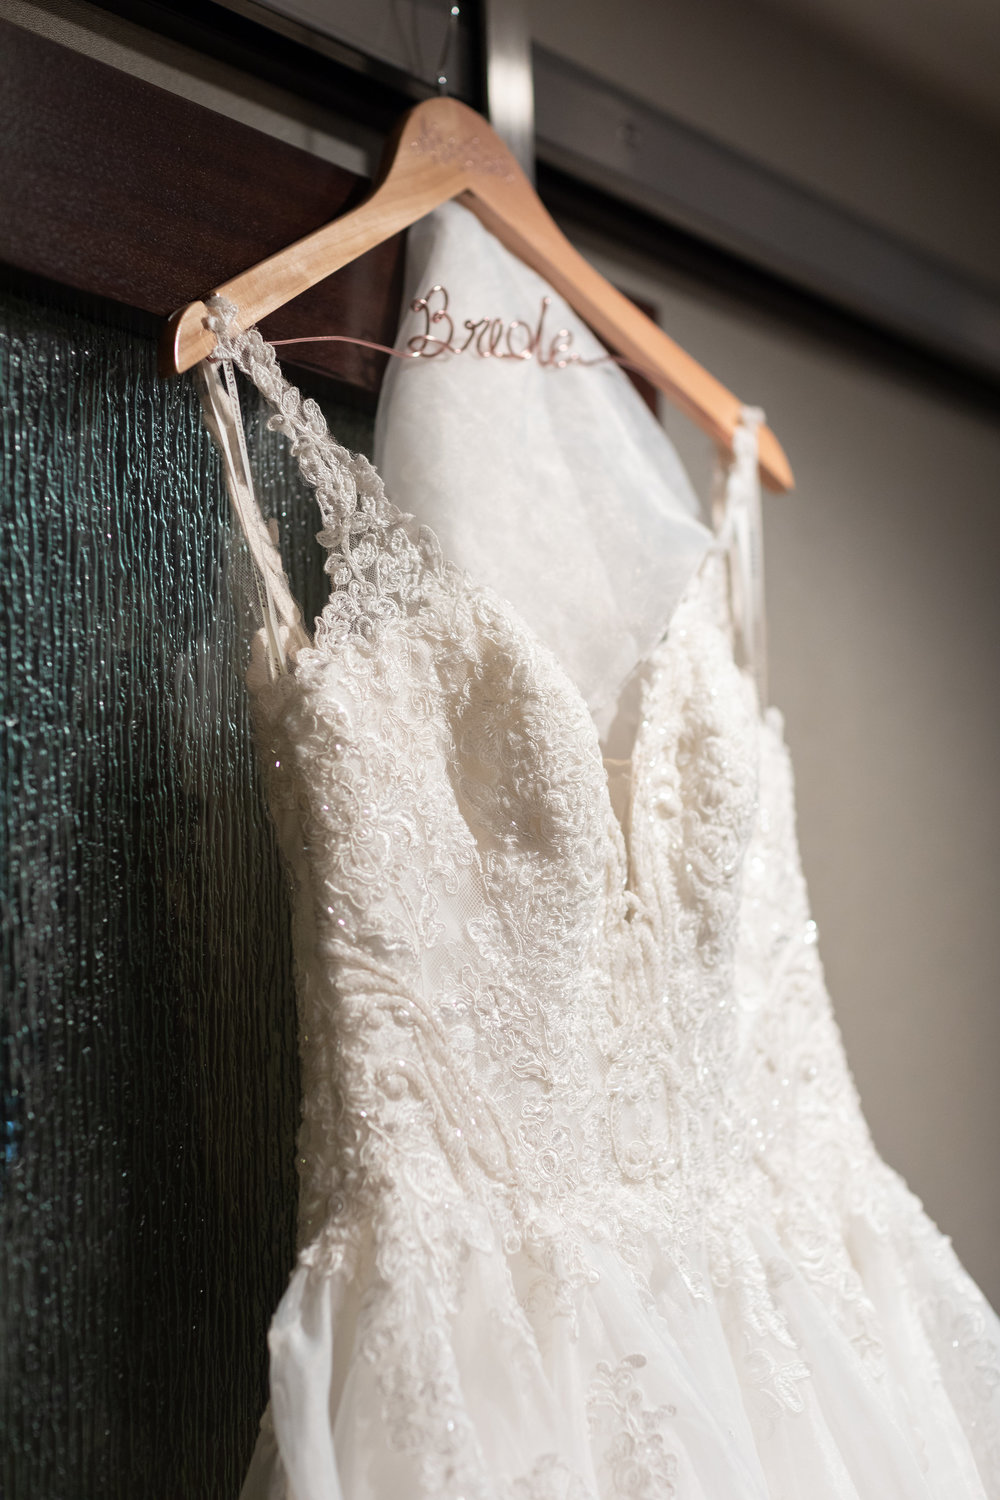 Photo of Hanging Wedding Dress.jpg